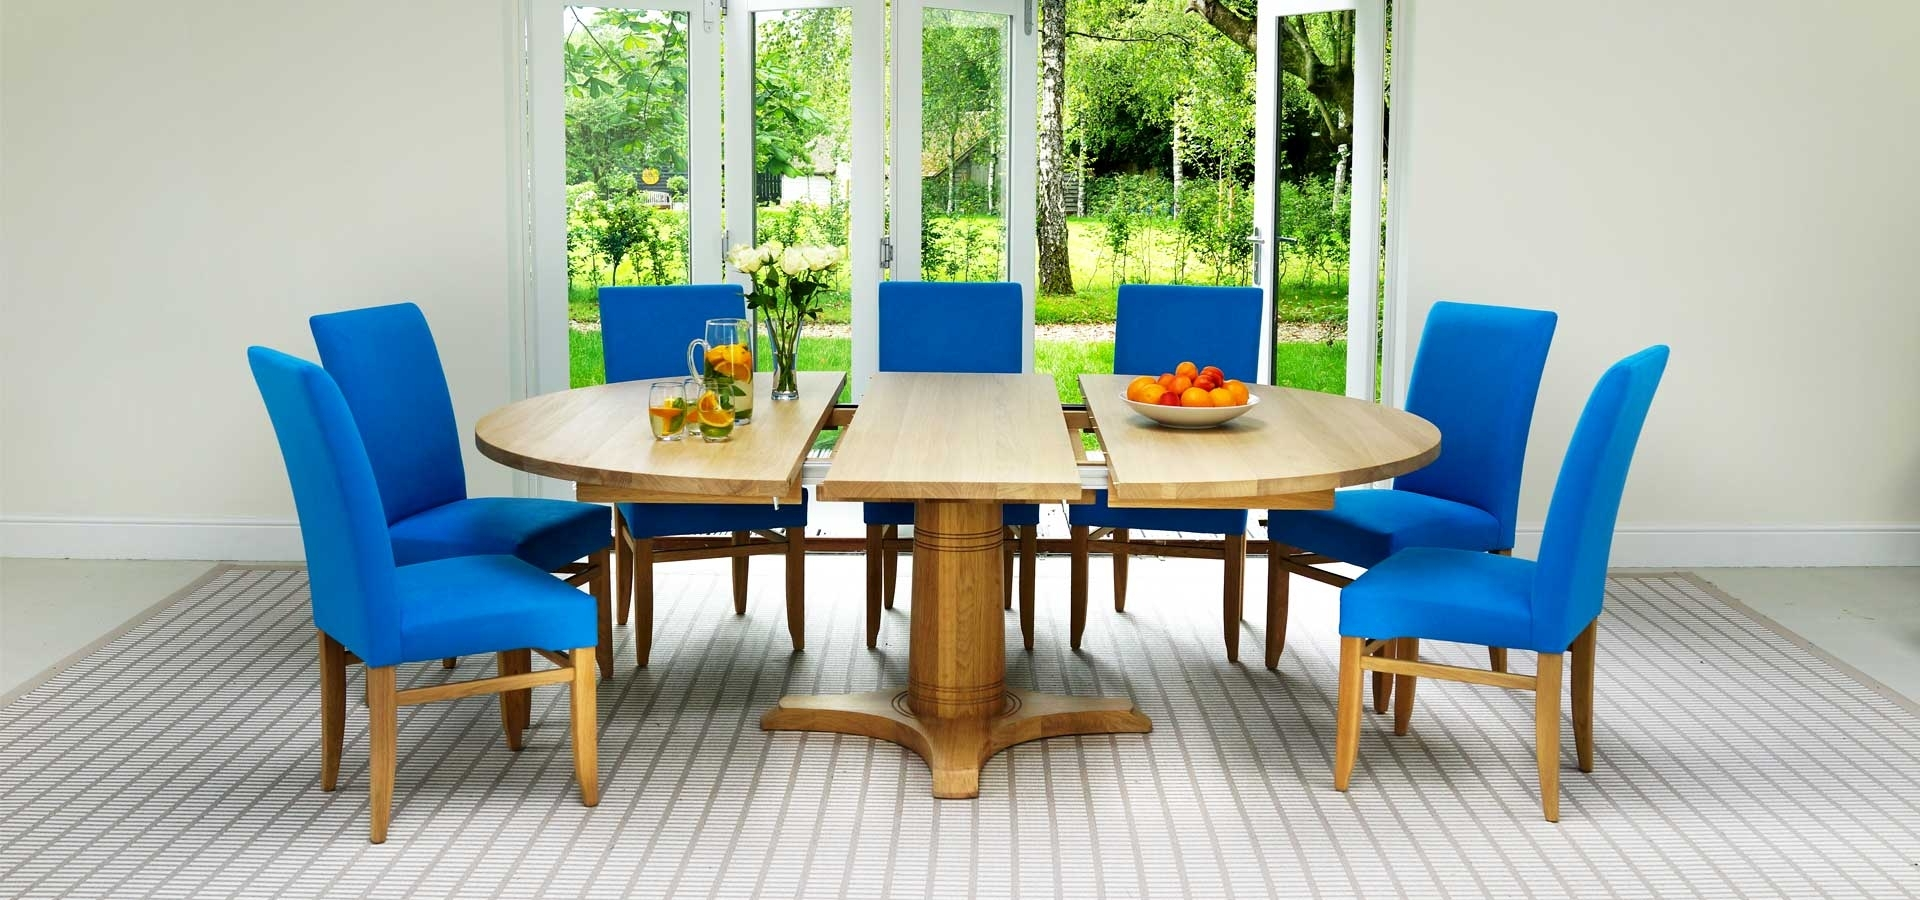 2018 Contemporary Round Dining Table